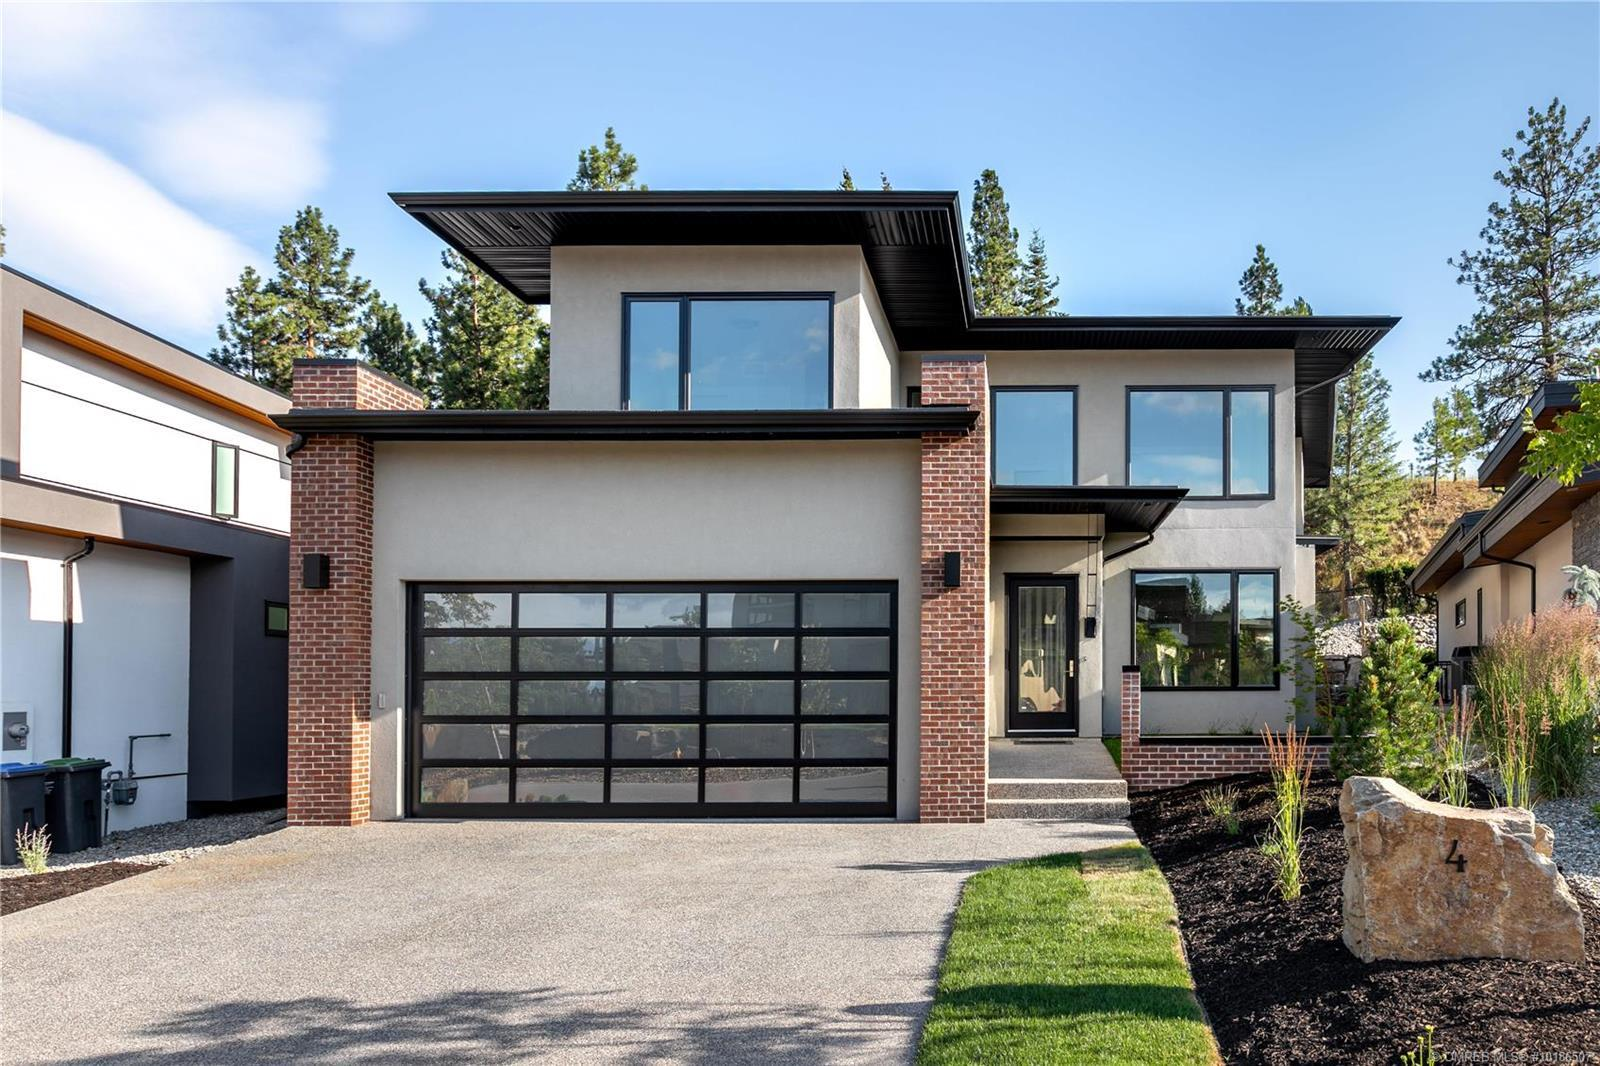 Removed: 4 - 1150 Mission Ridge Road, Kelowna, BC - Removed on 2019-10-14 04:18:18